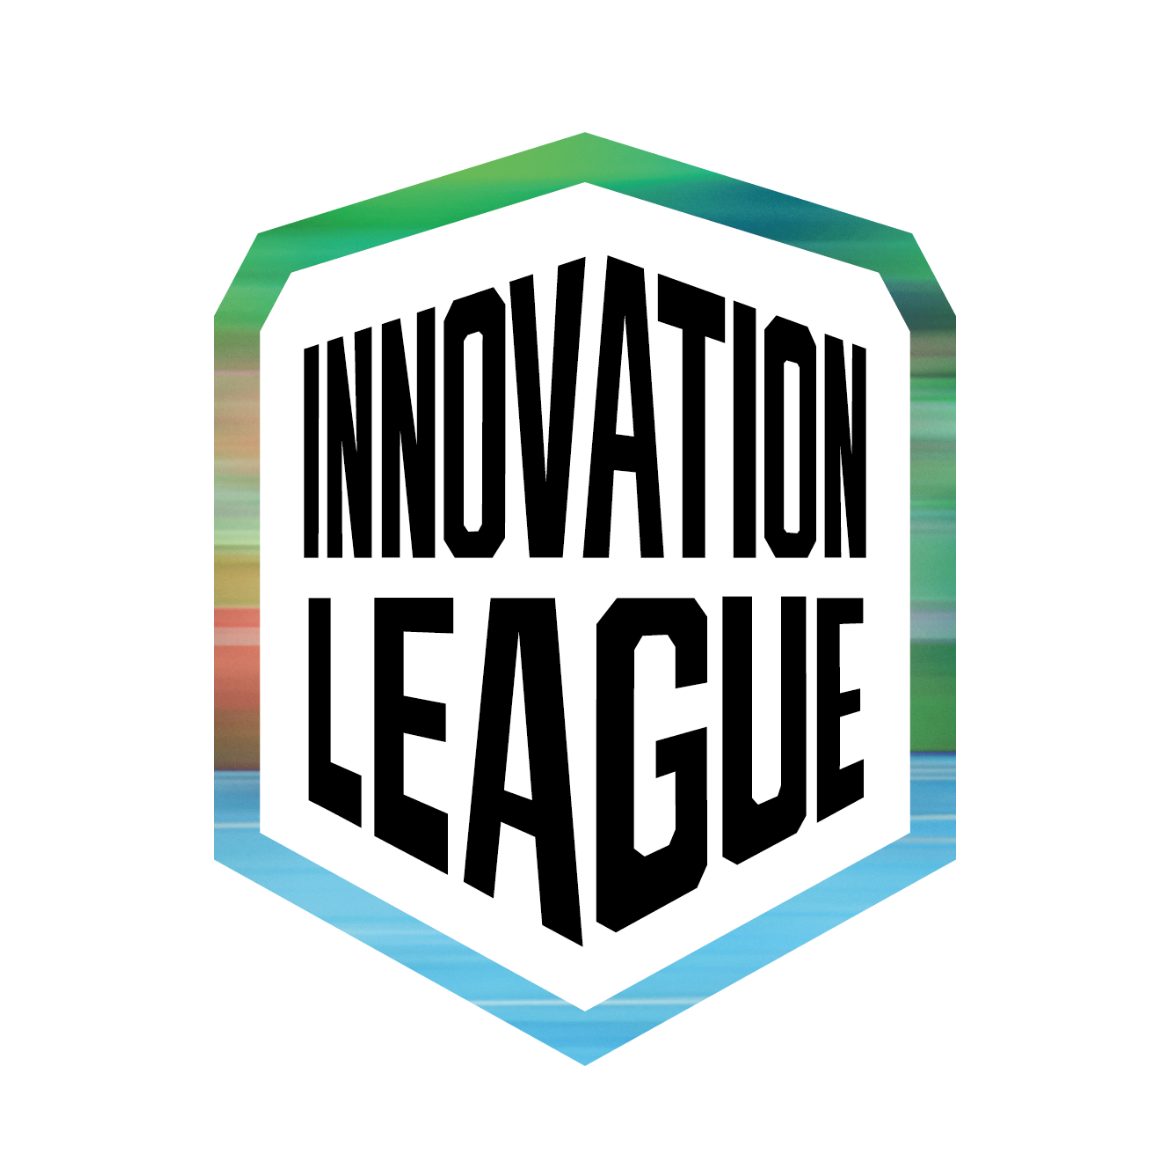 INNOVATION LEAGUE